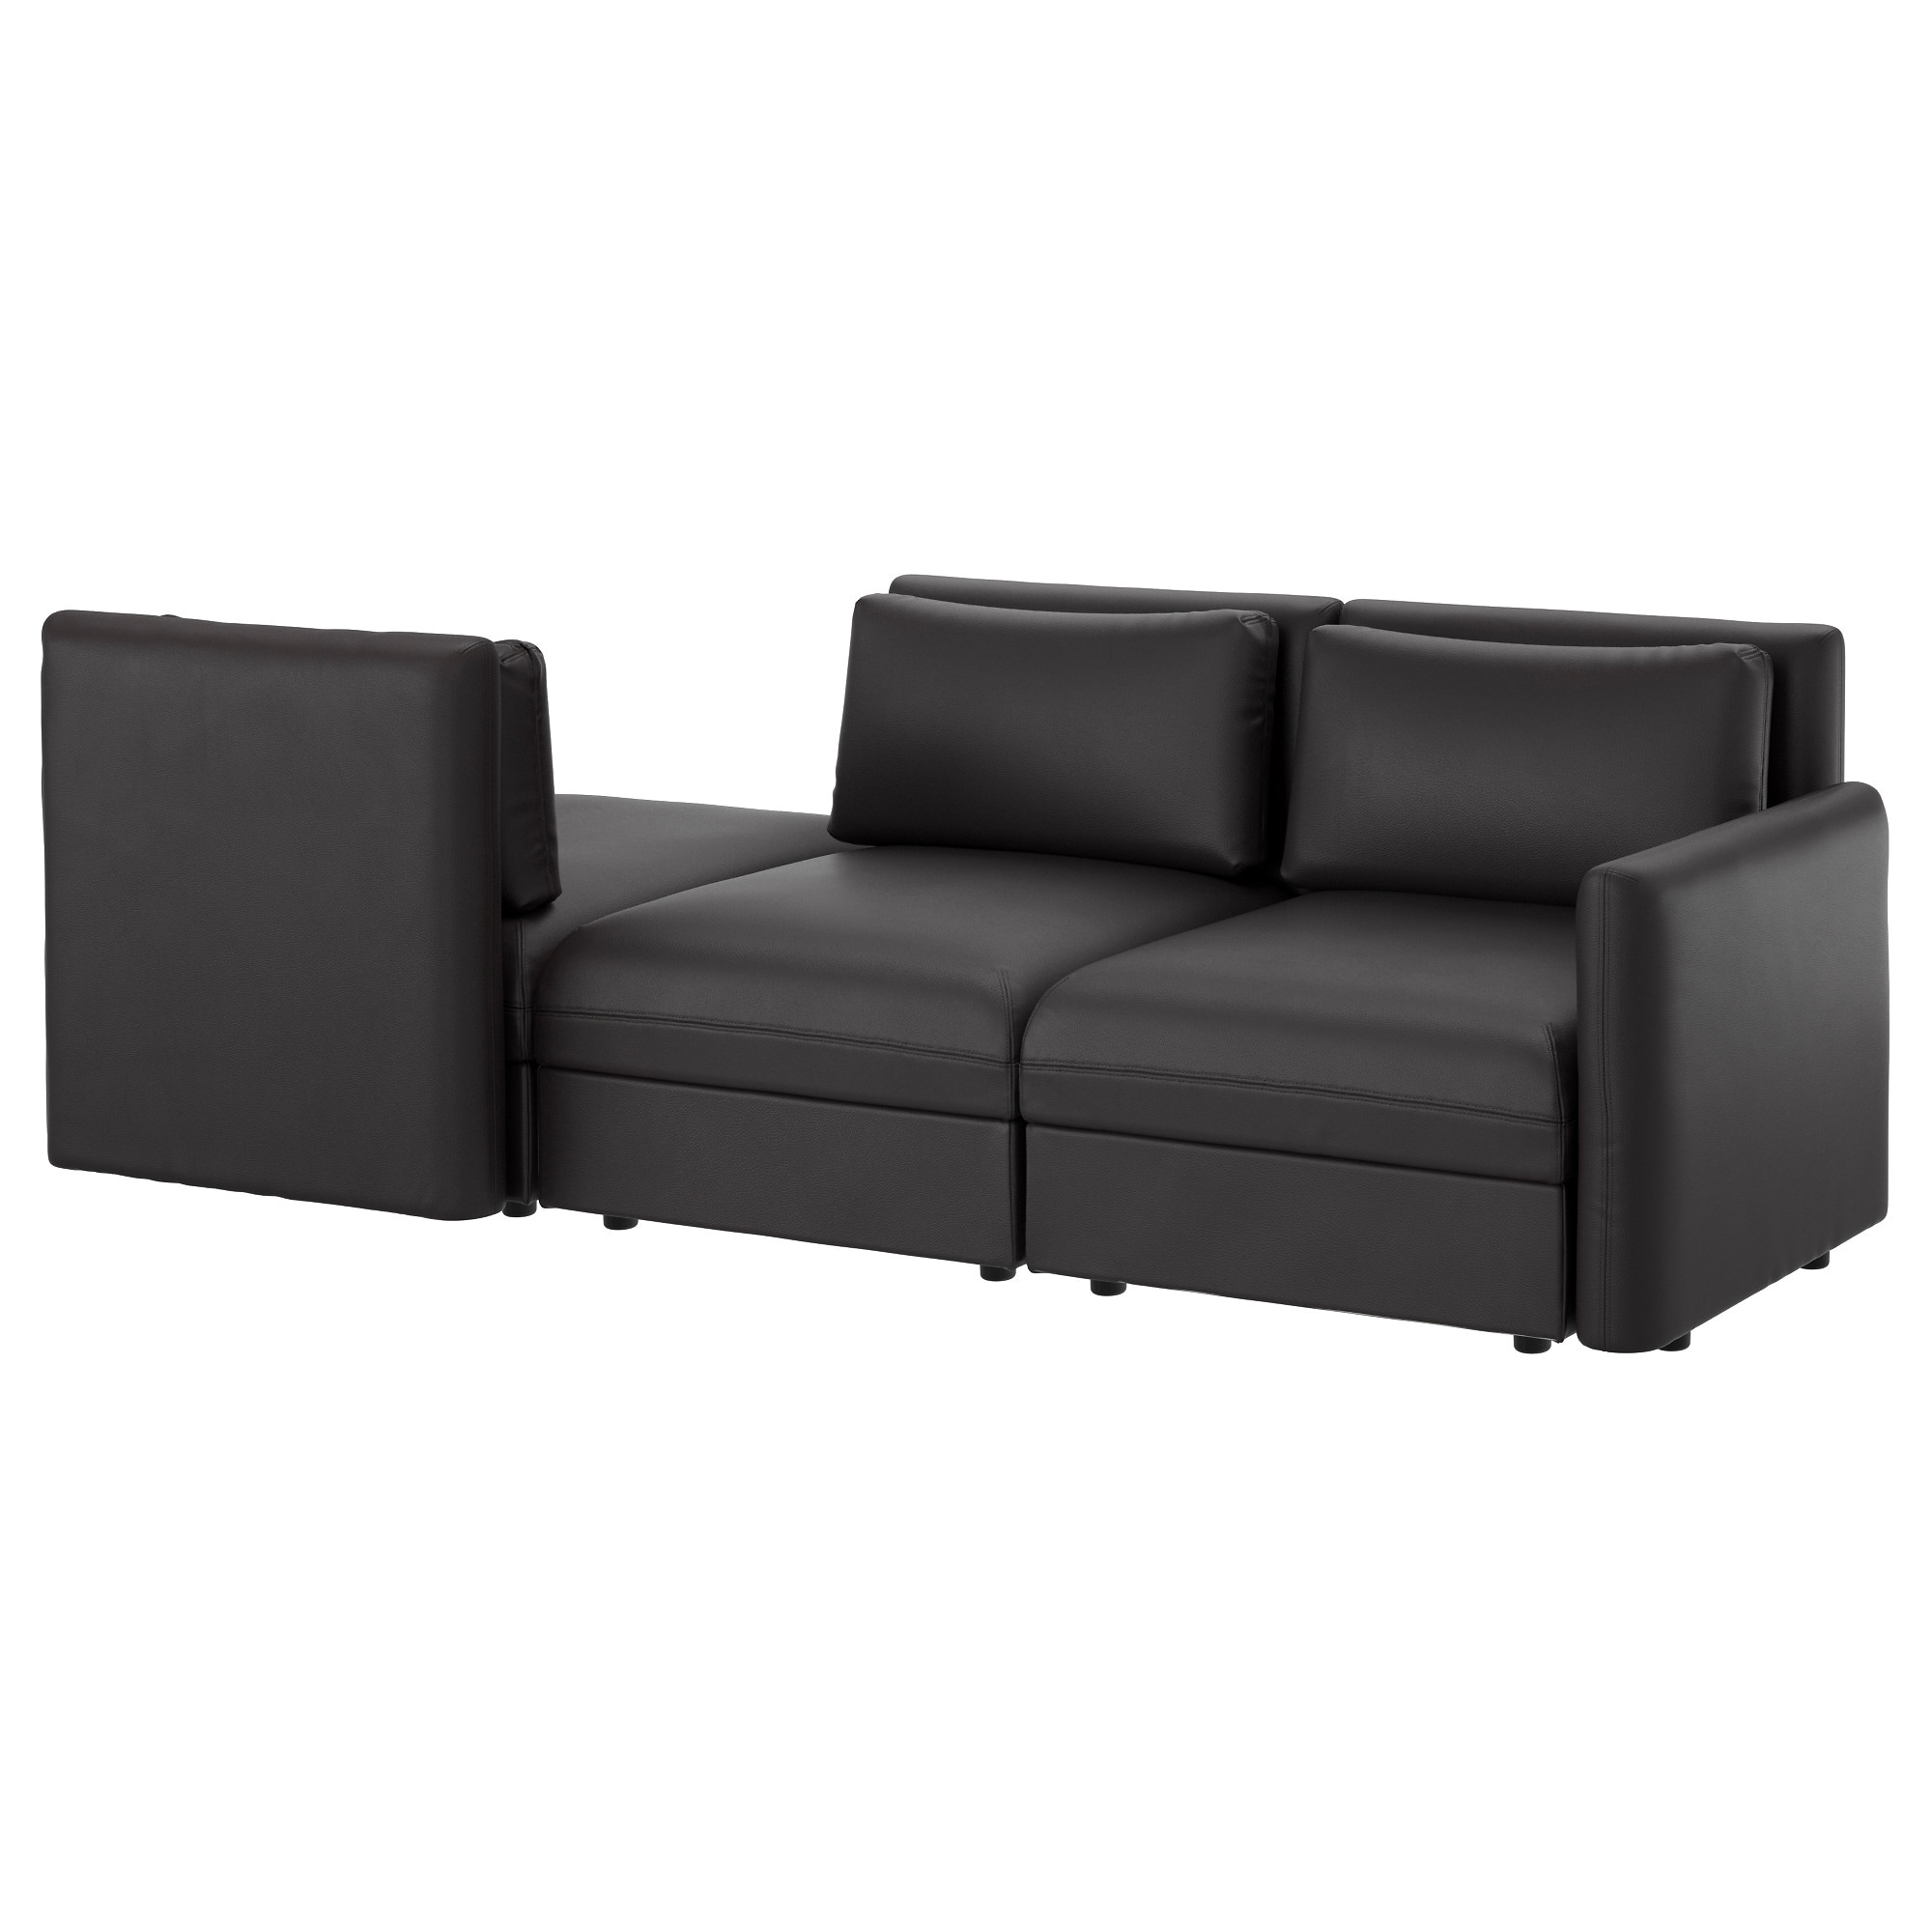 Leather & Faux Leather Couches, Chairs & Ottomans - Ikea Couch L Form